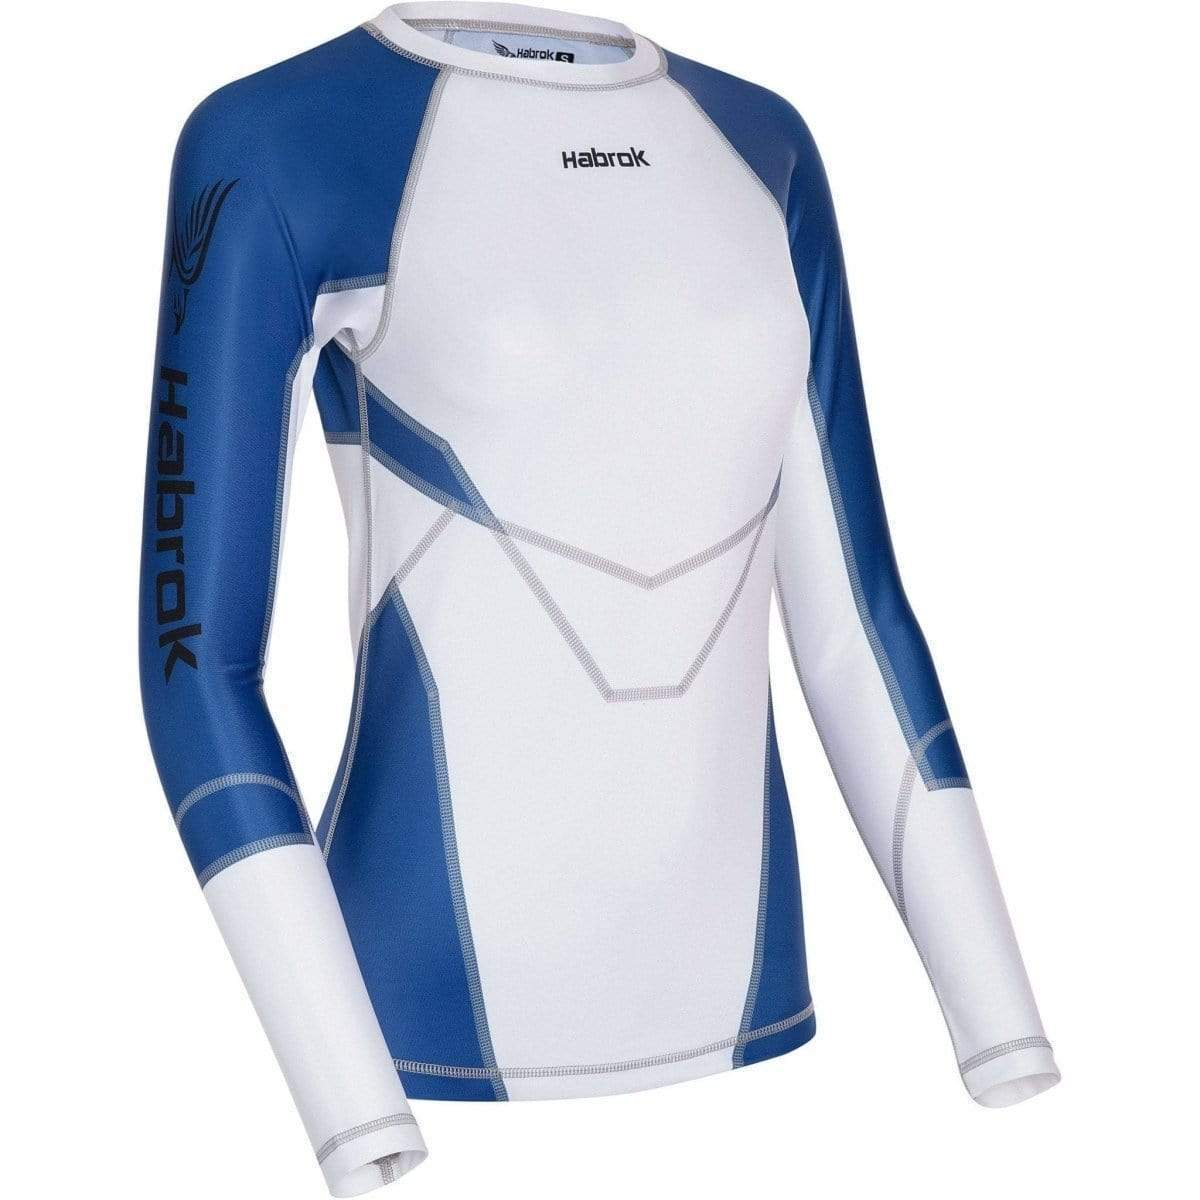 Habrok Rash Guard XS / BLUE Transform 2.5 |Rash Guard Women | Full Sleeve